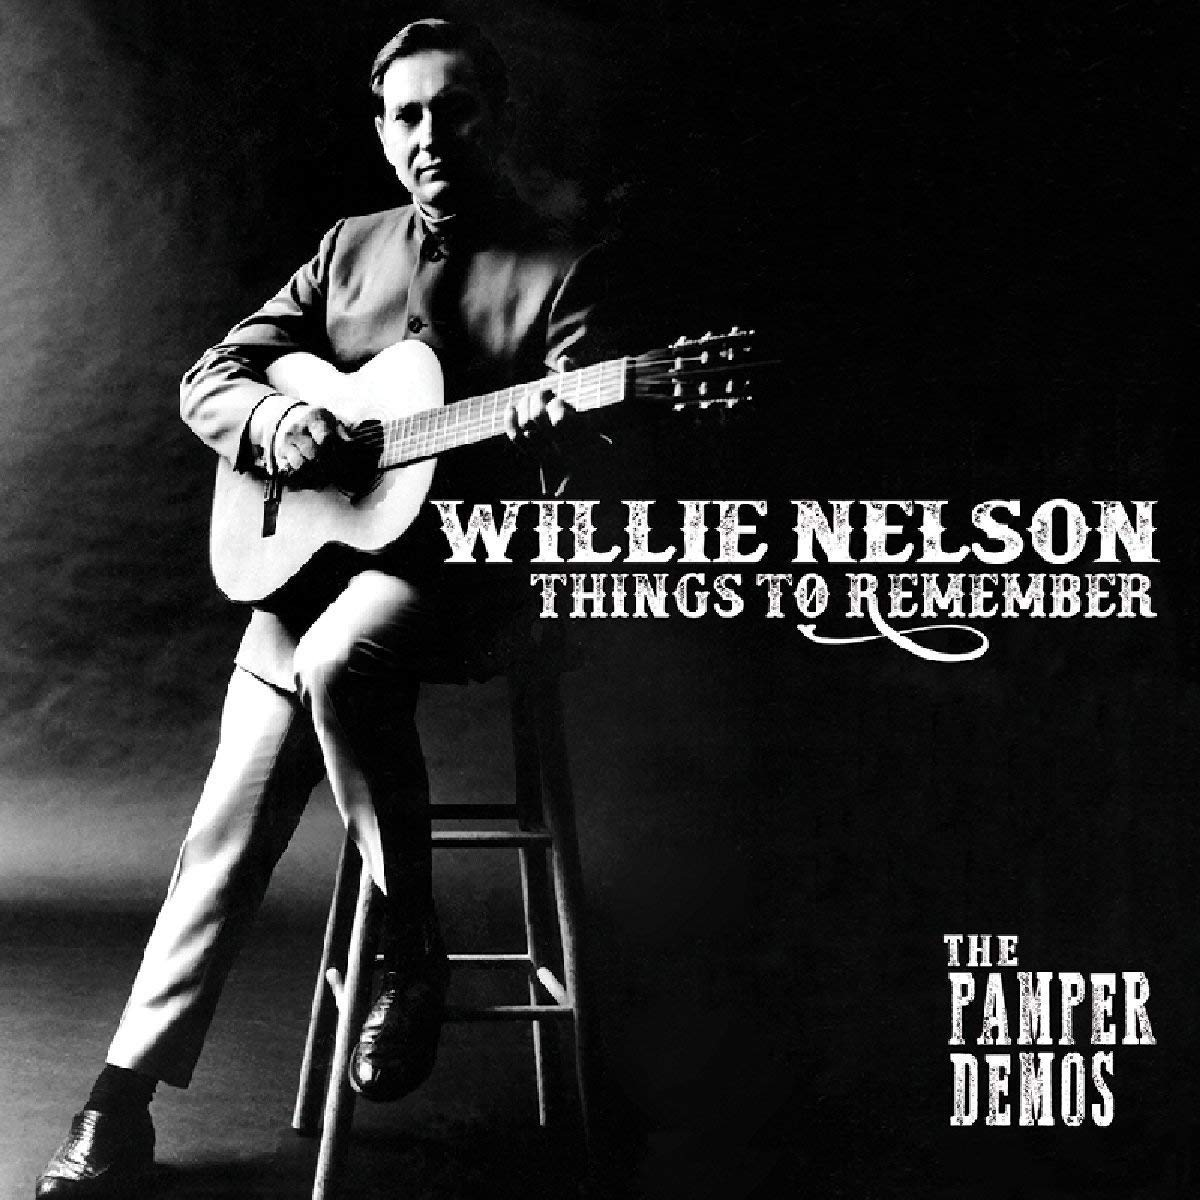 Willie Nelson - Things To Remember - The Pamper Demos [Limited Edition LP]